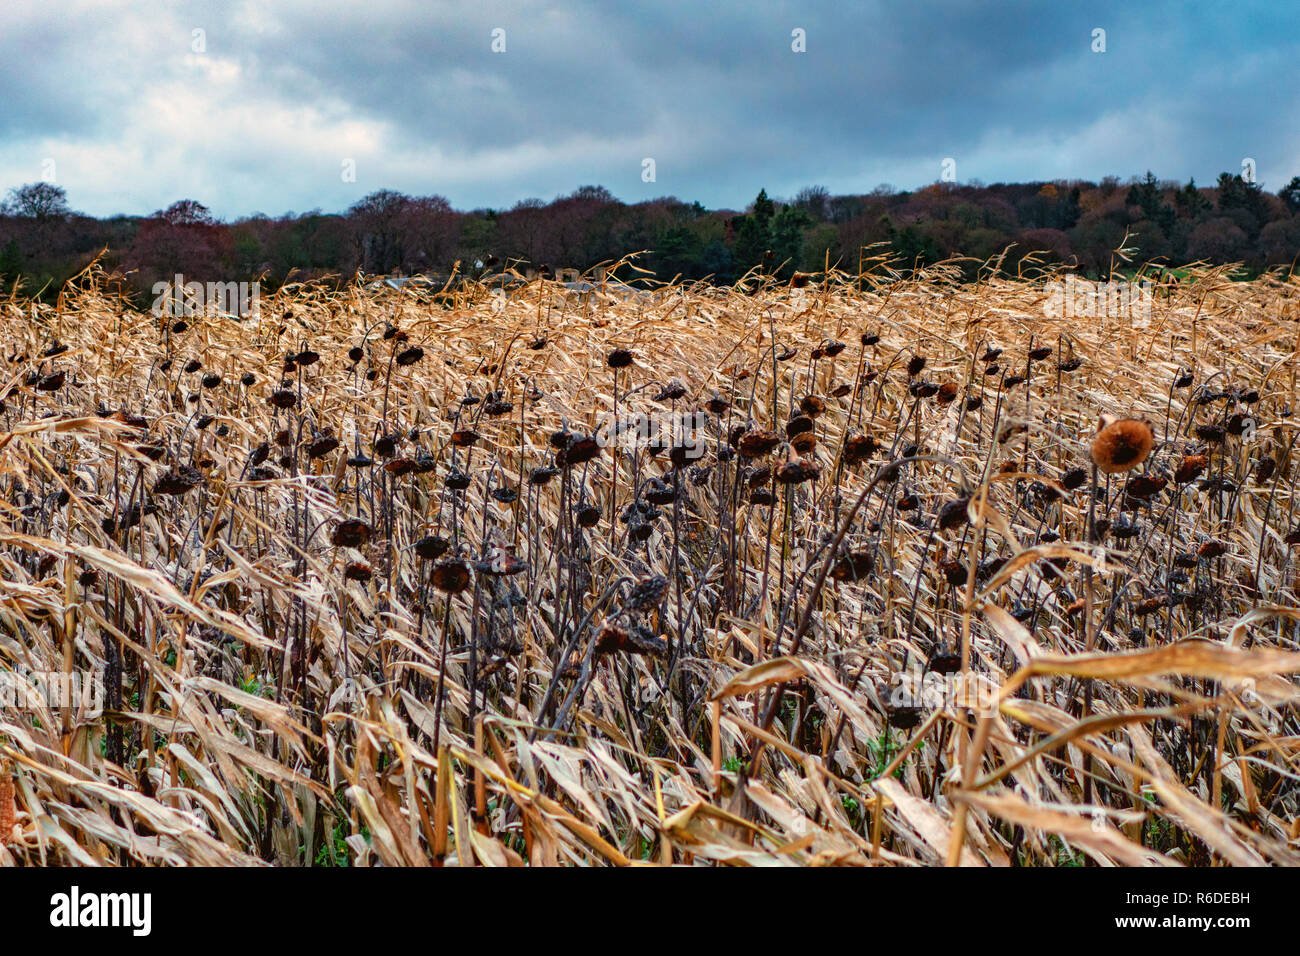 A field of dead Sunflowers in the foreground on the Pennine Way near Barnsley, England on a Stormy winters day - Stock Image